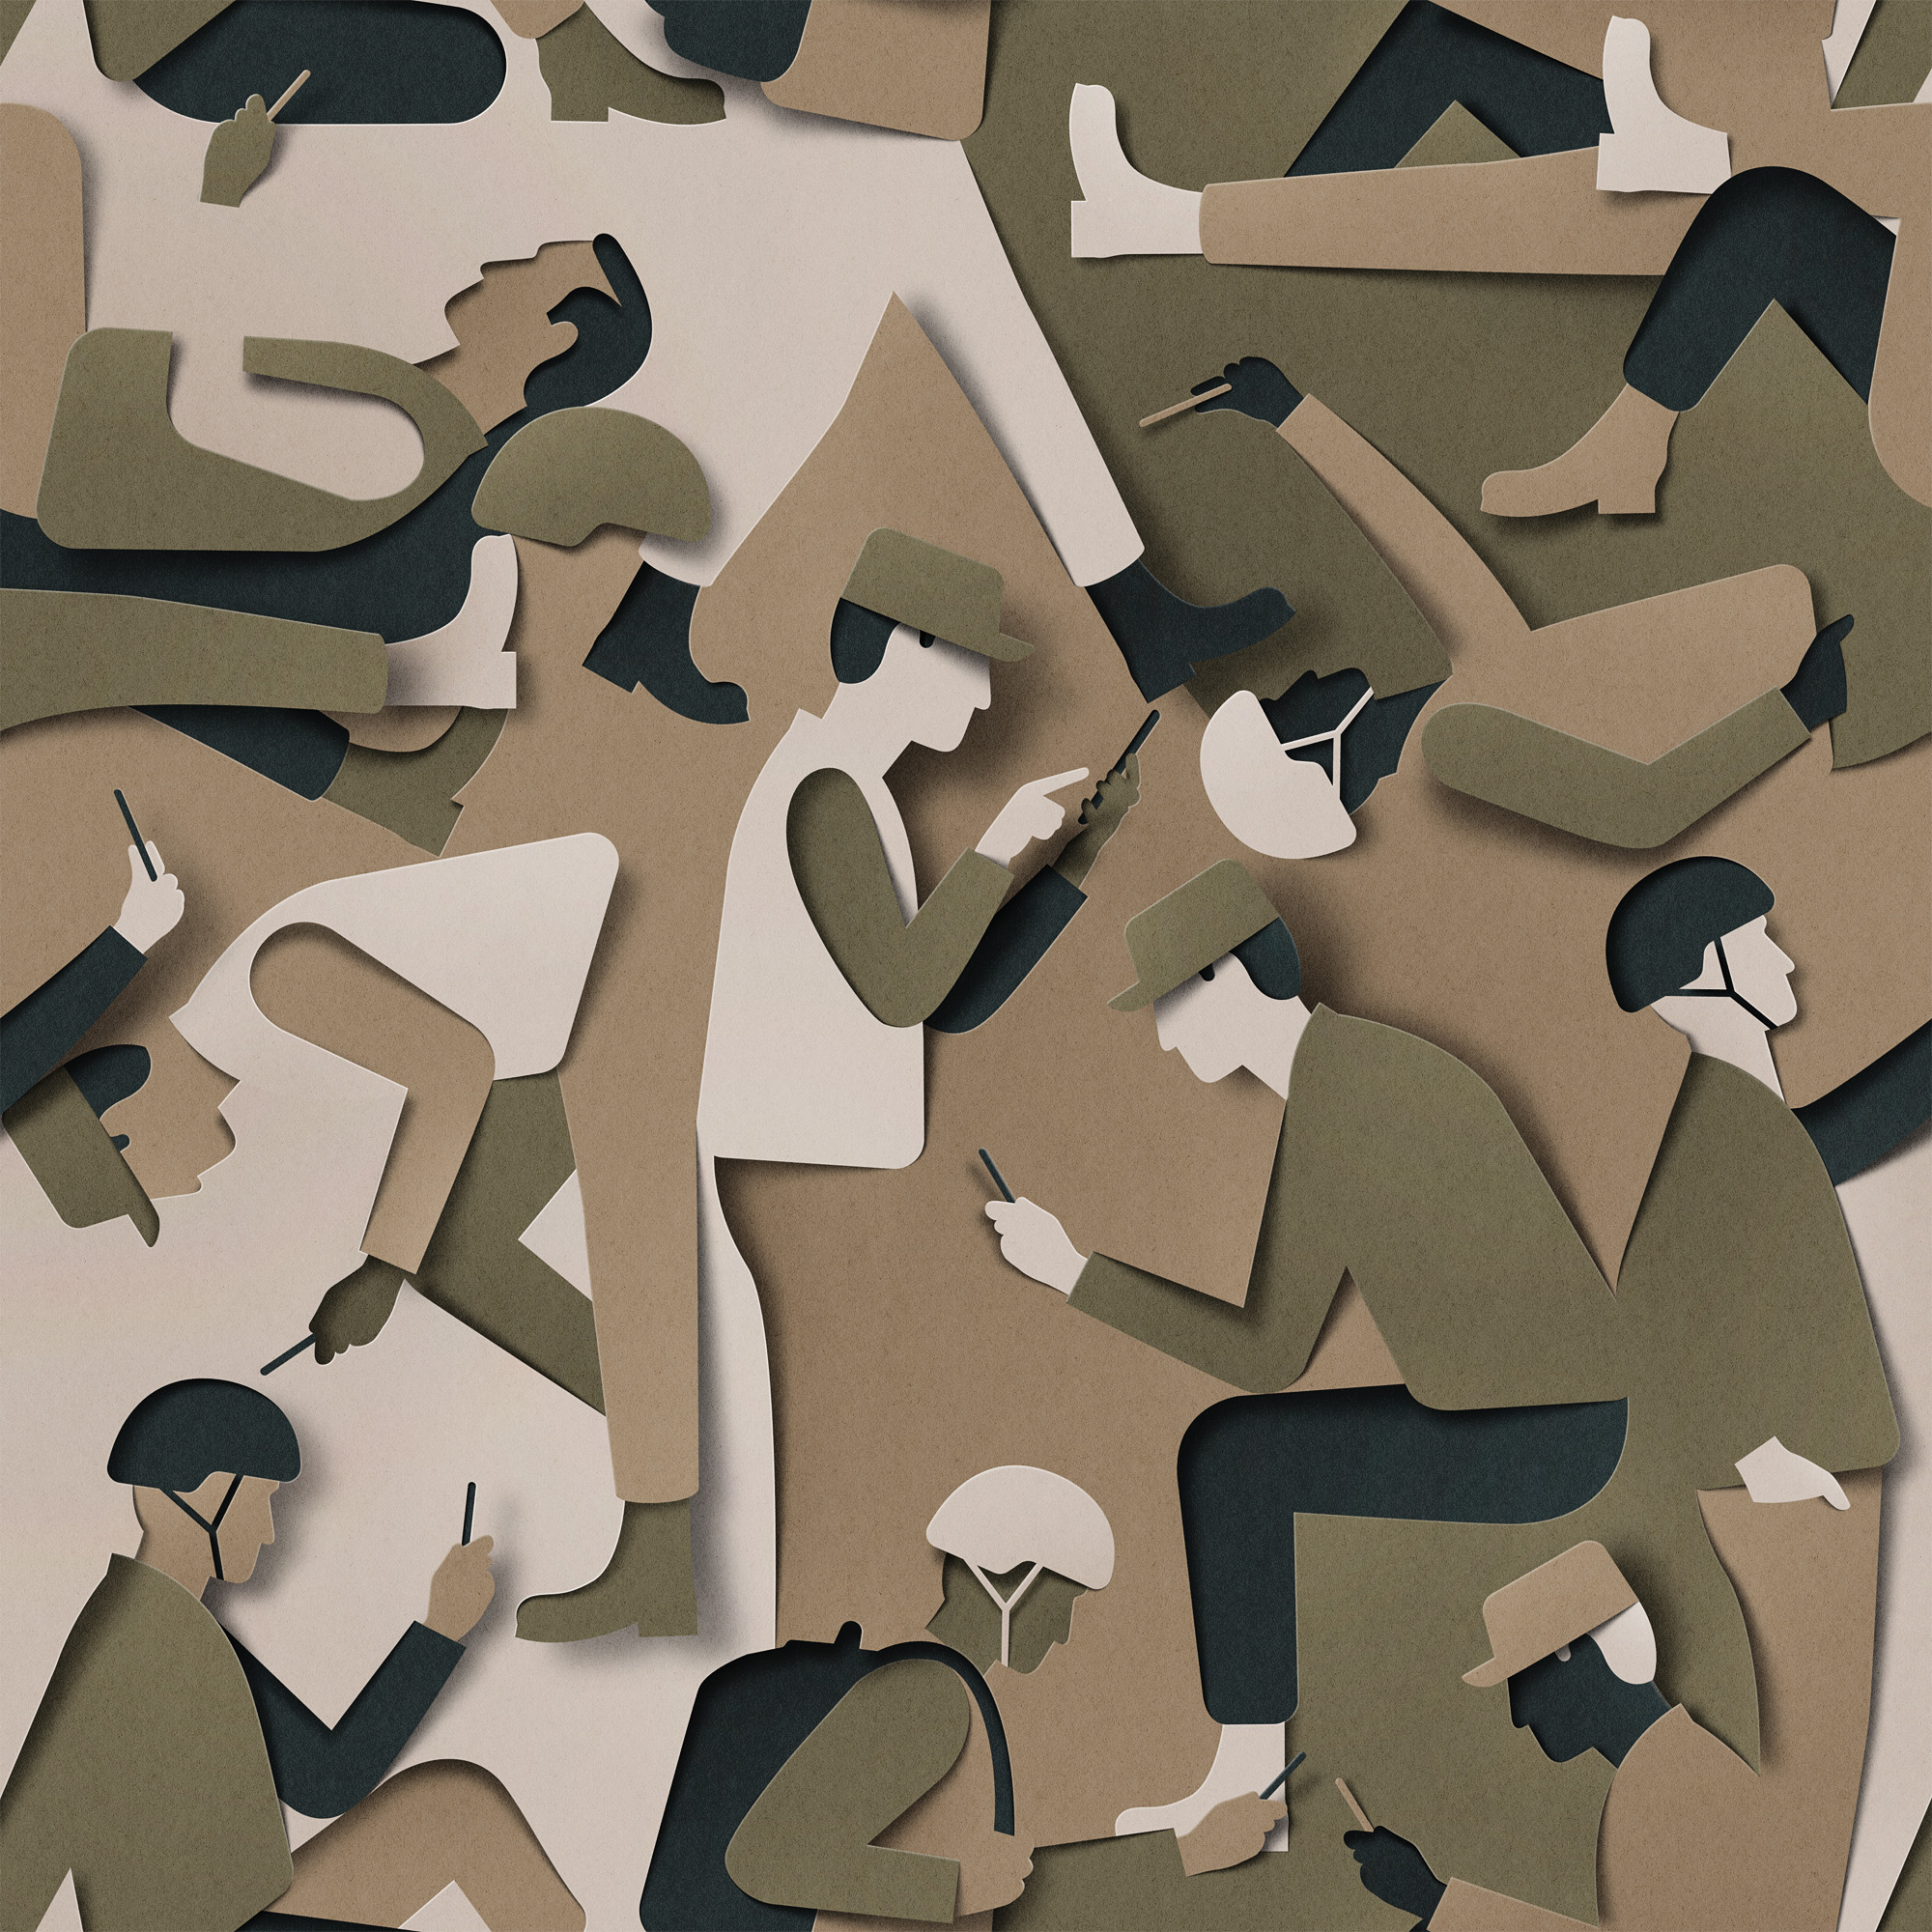 Super Clever Editorial Illustration - Dangerous Camouflage